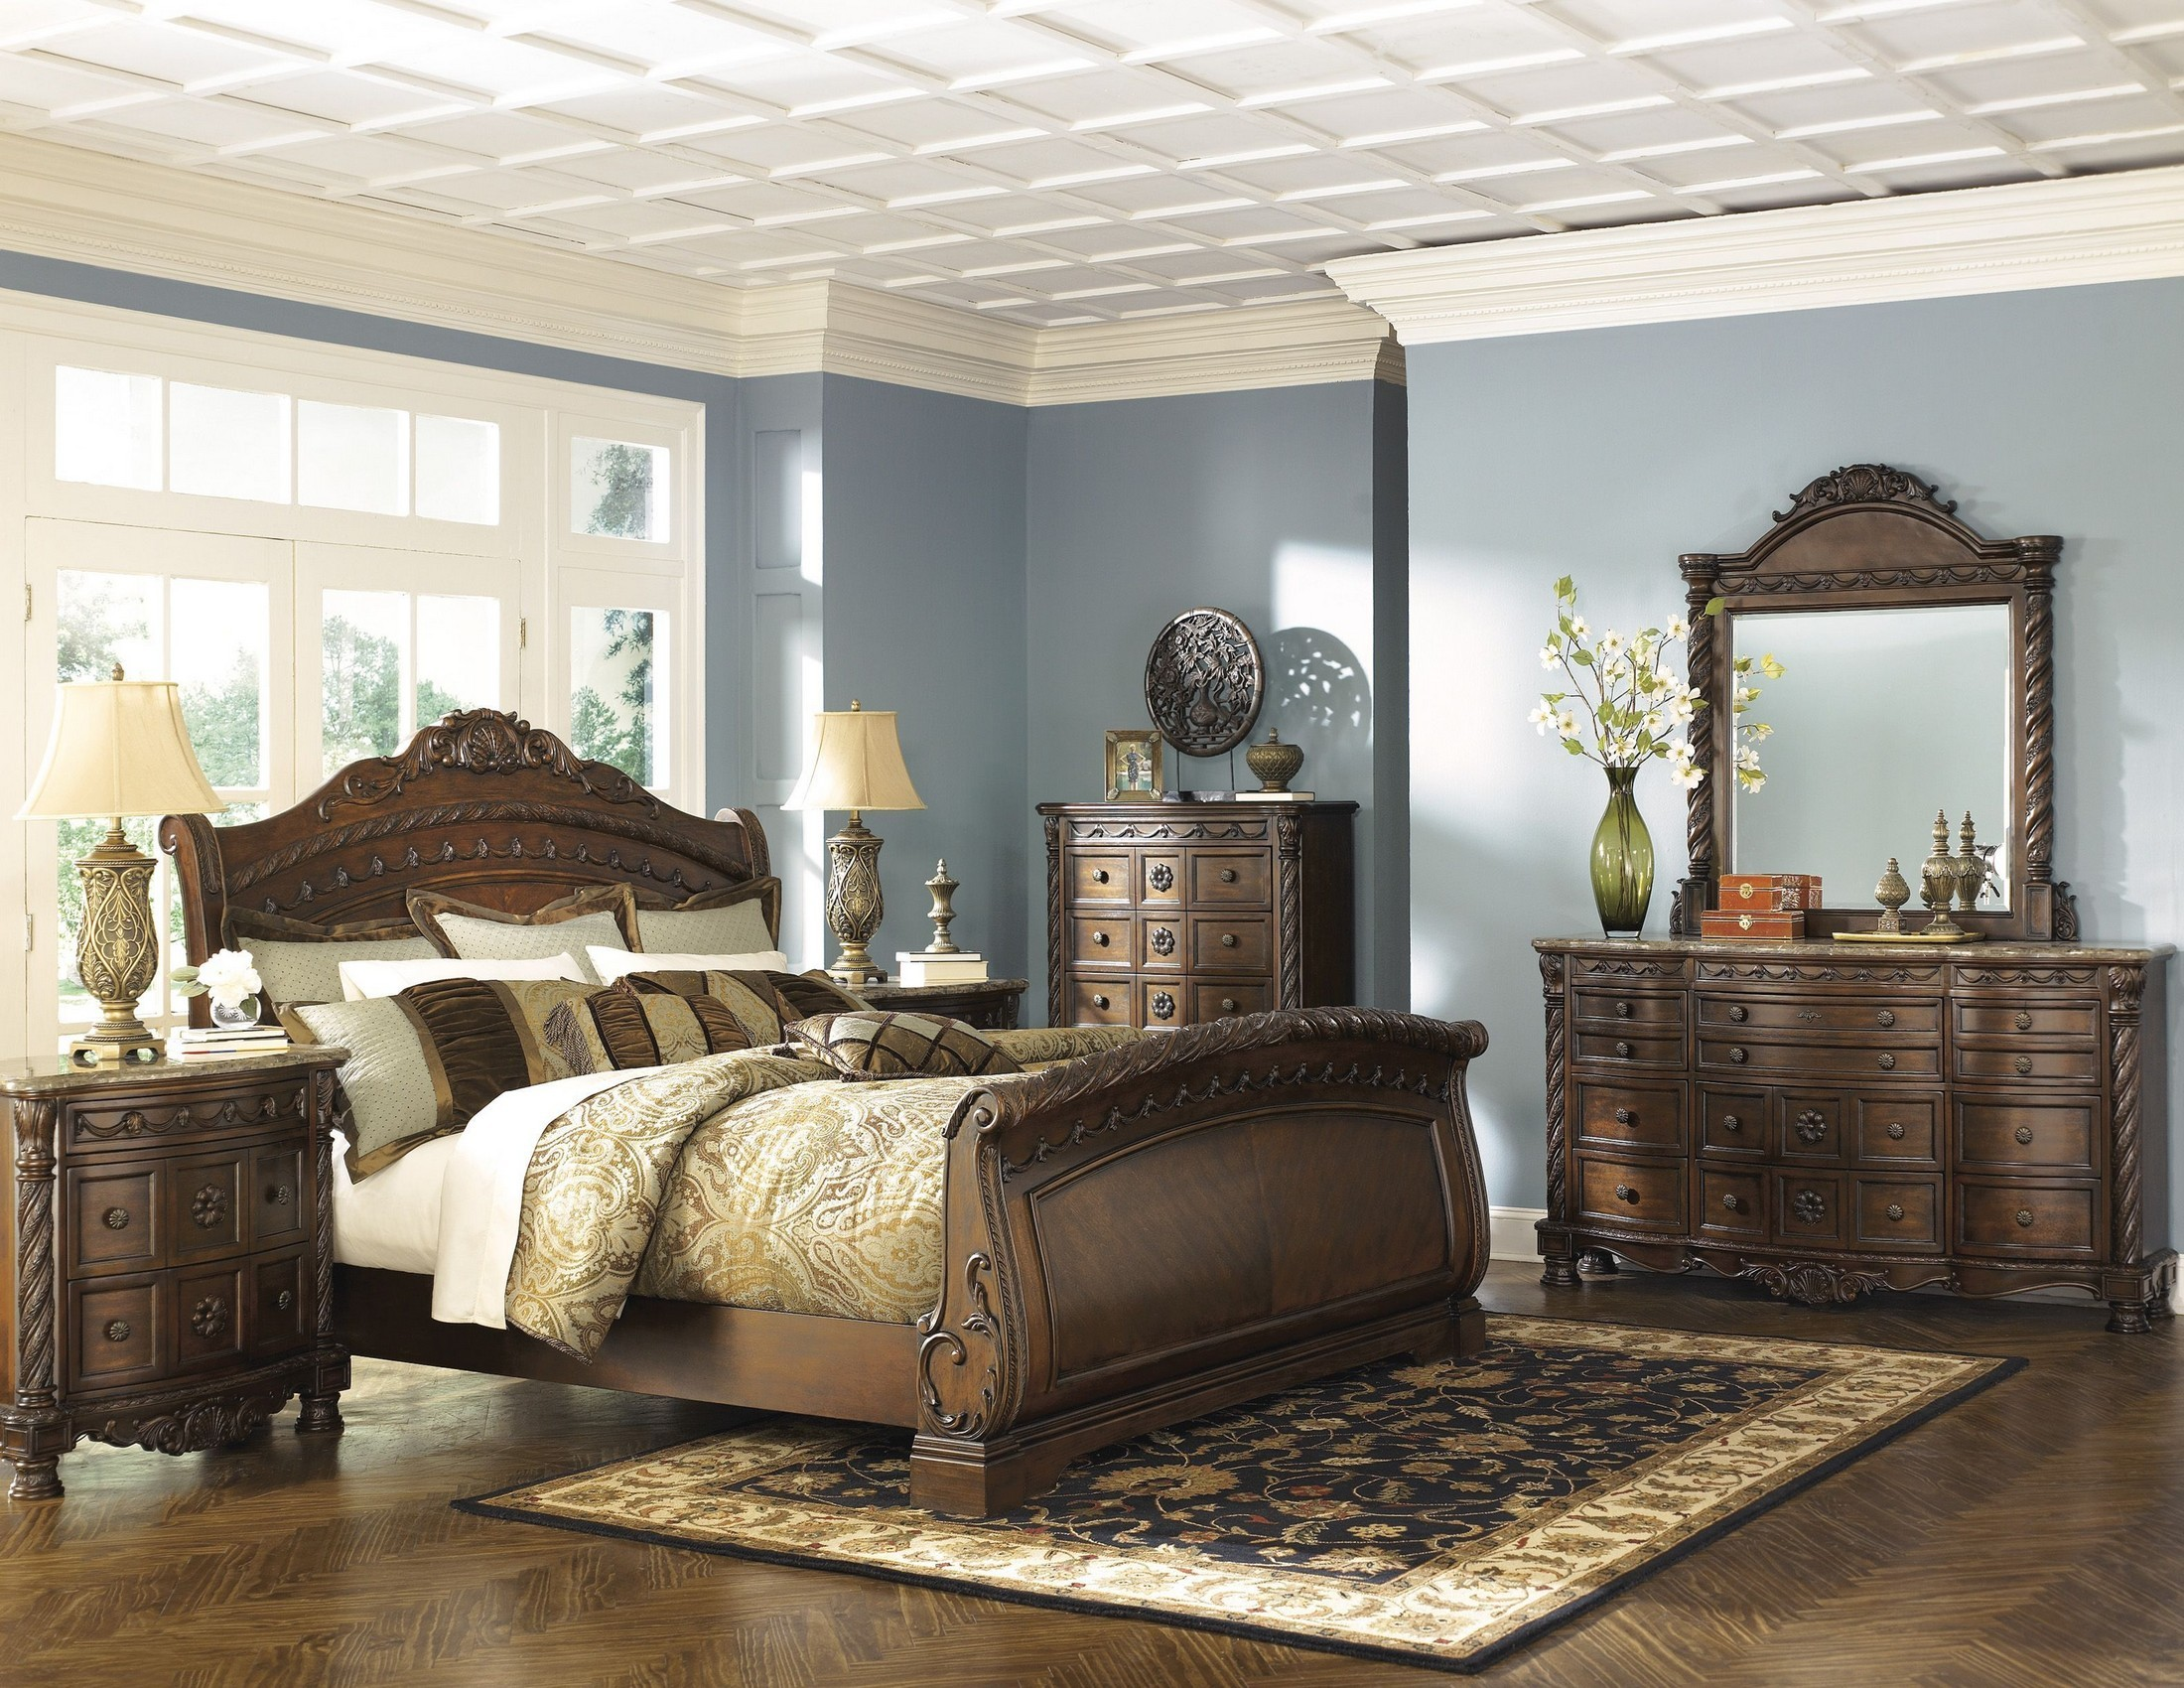 Top North Shore Sleigh Bedroom Set from Ashley (B553) | Coleman Furniture SC12